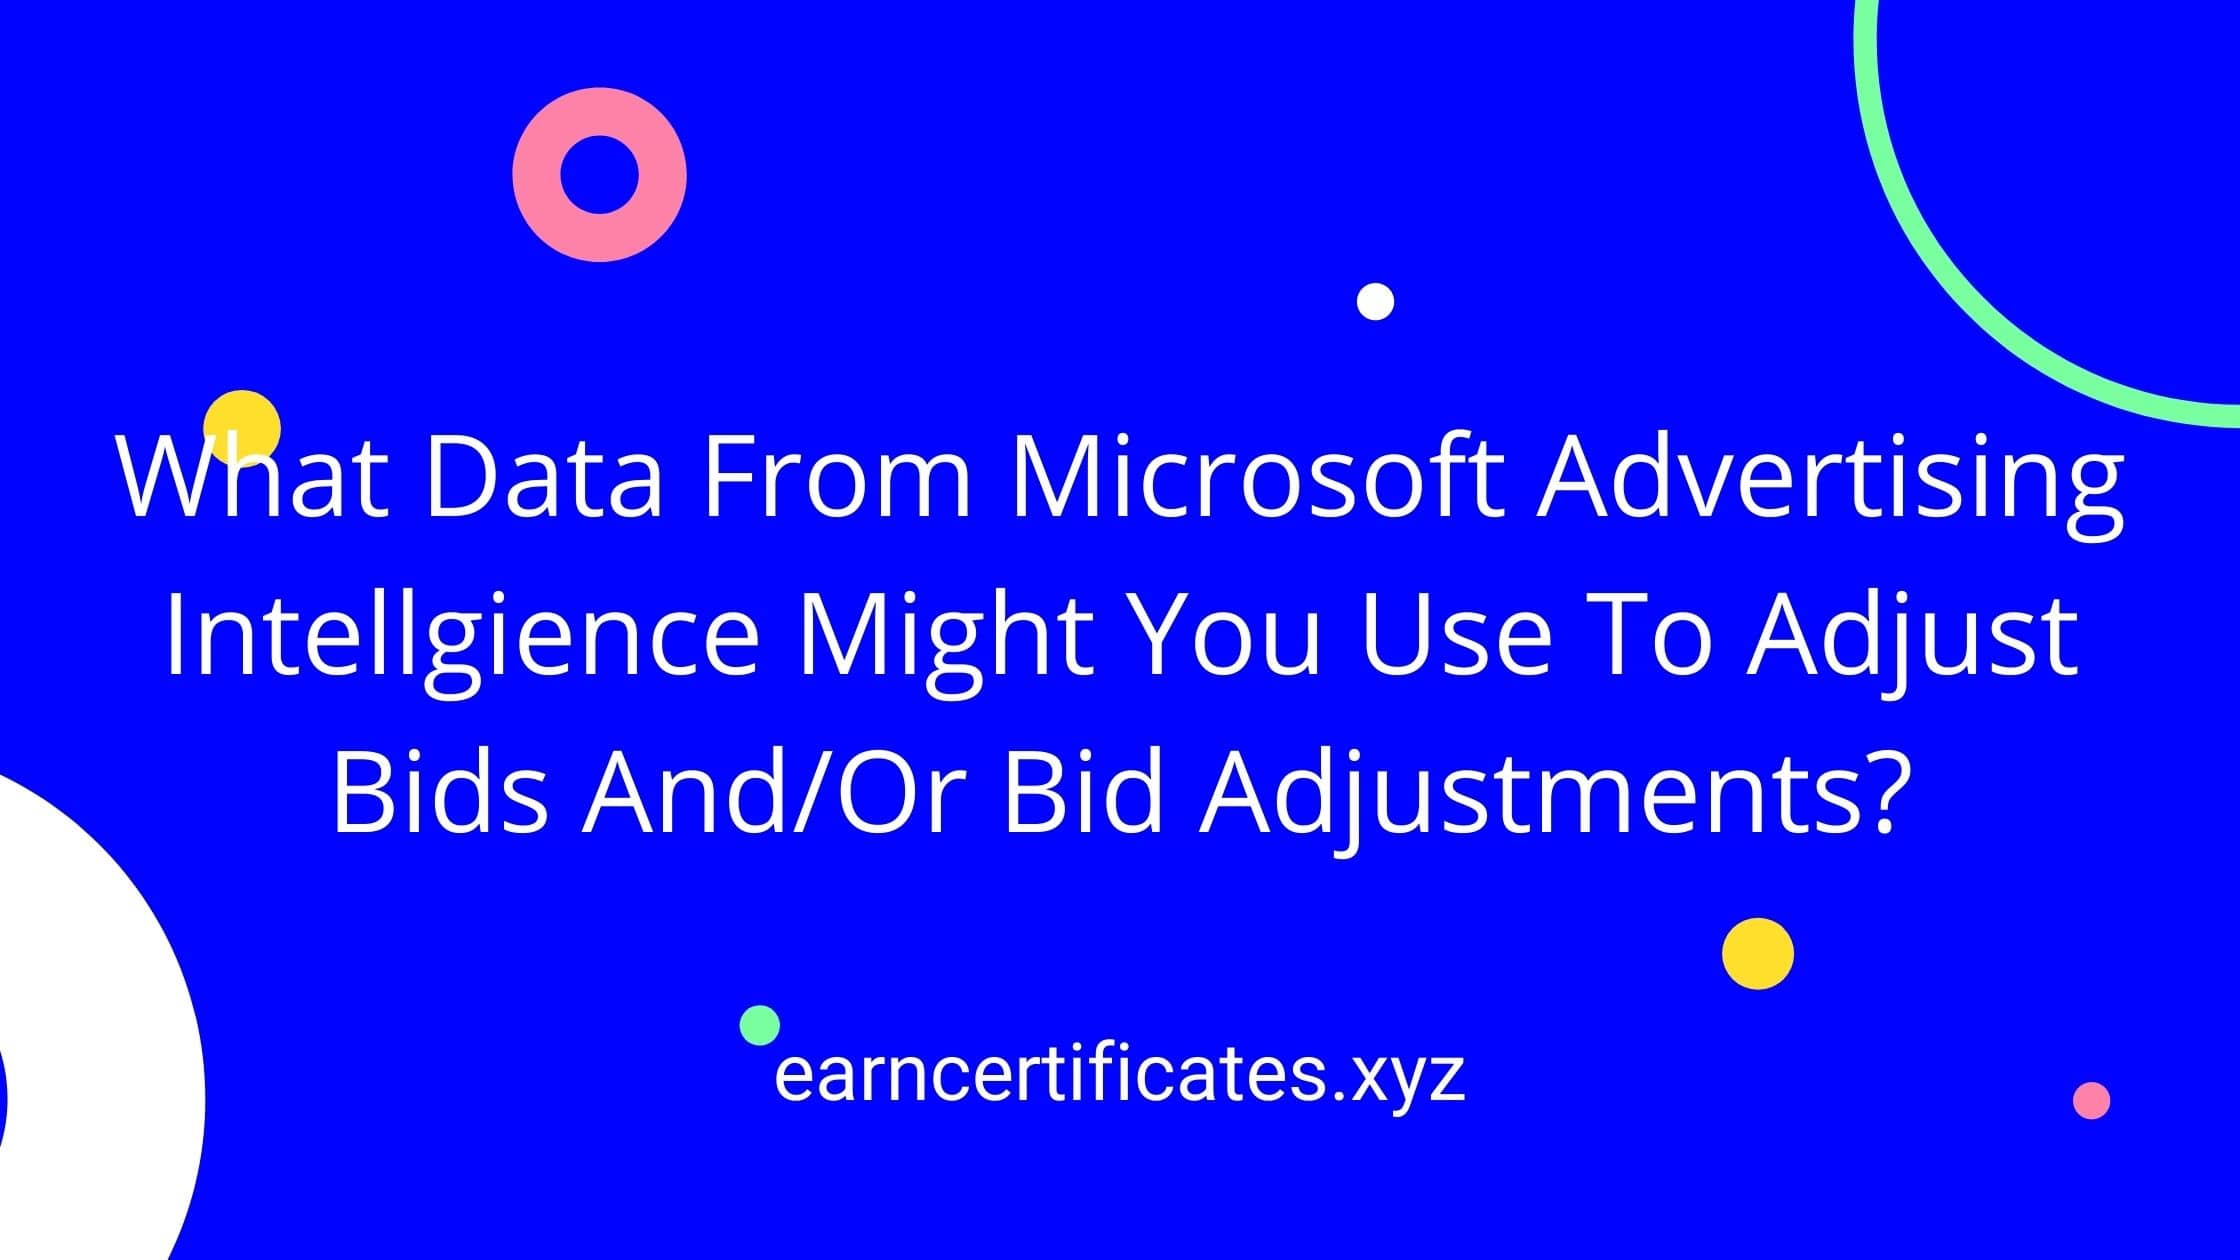 What Data From Microsoft Advertising Intellgience Might You Use To Adjust Bids And/Or Bid Adjustments?